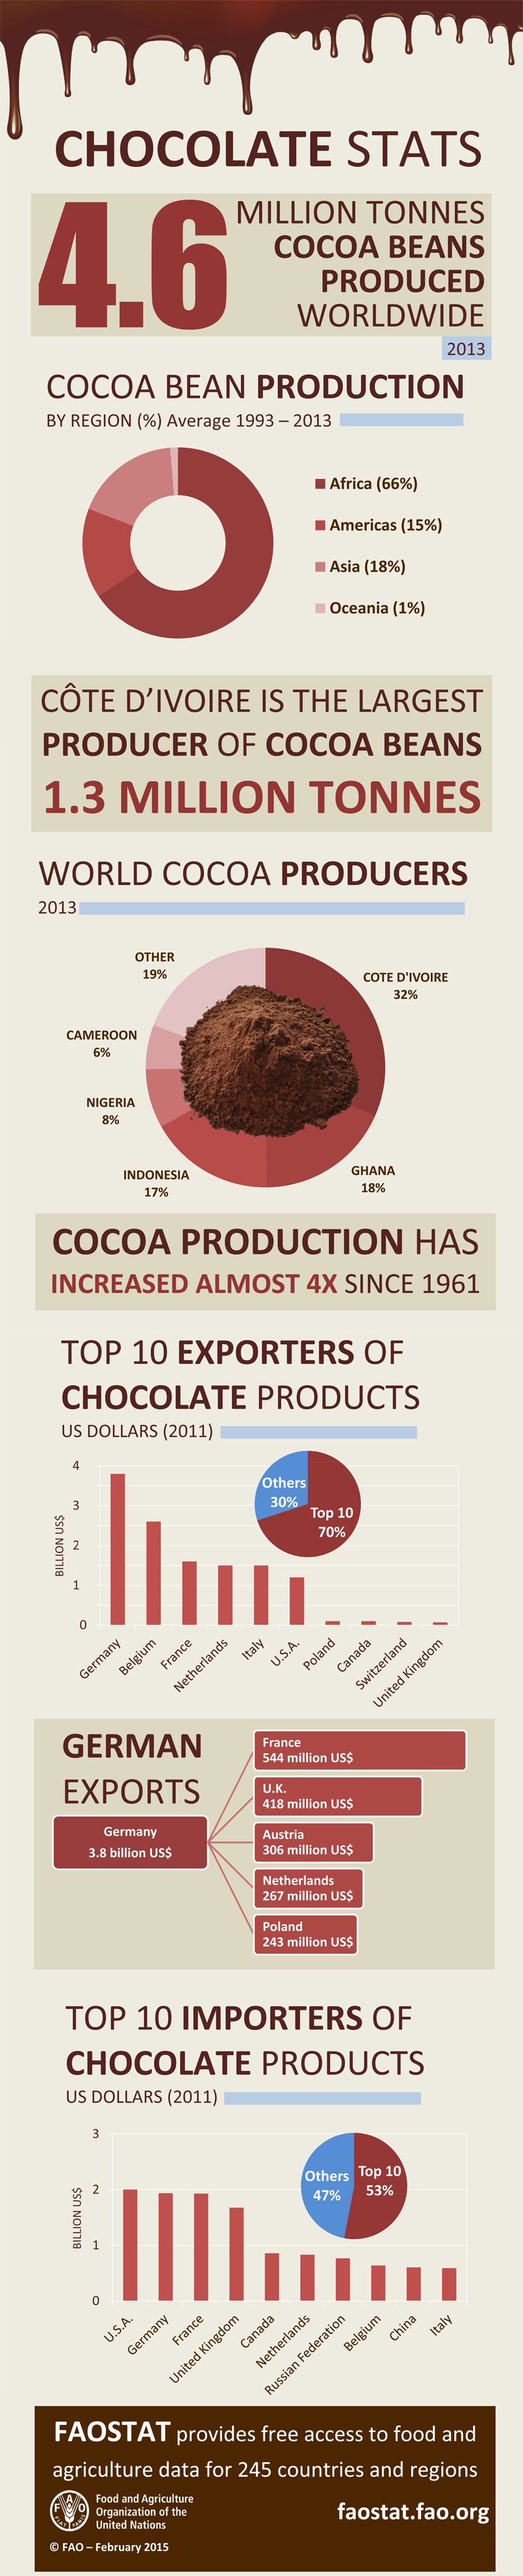 Chocolate: facts and figures